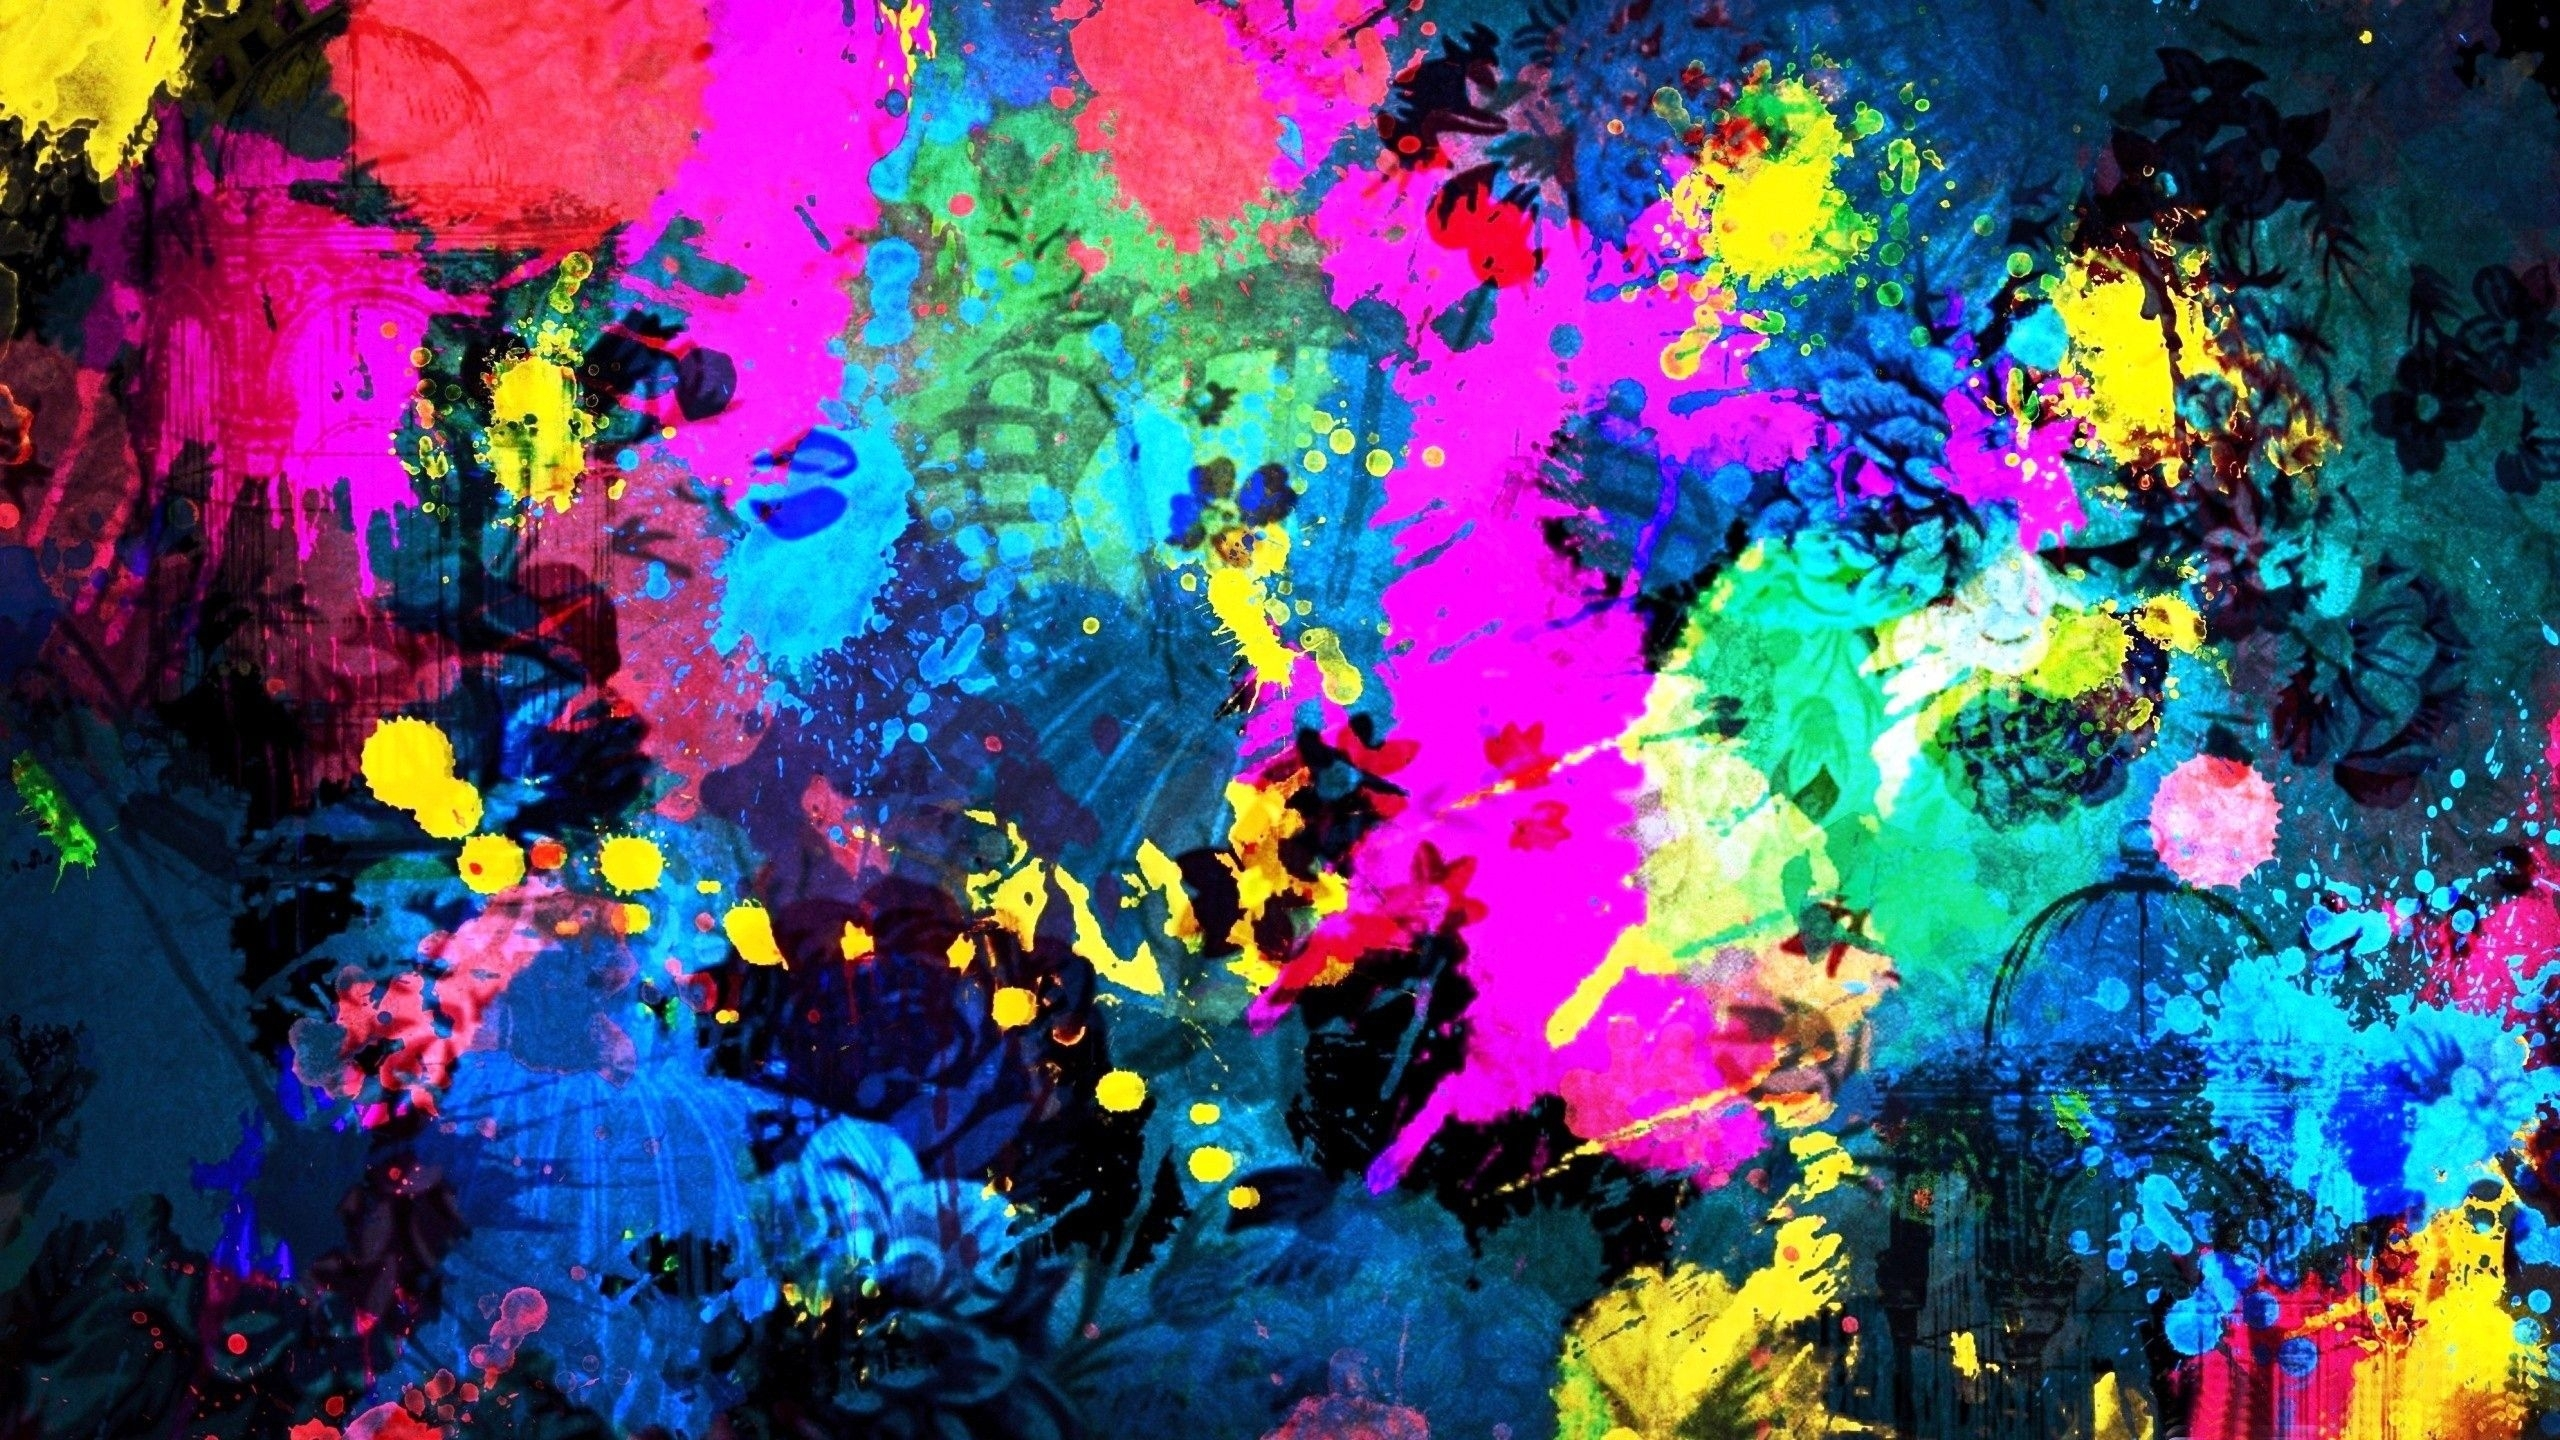 10 New Abstract Art Desktop Wallpaper FULL HD 1920×1080 For PC Background